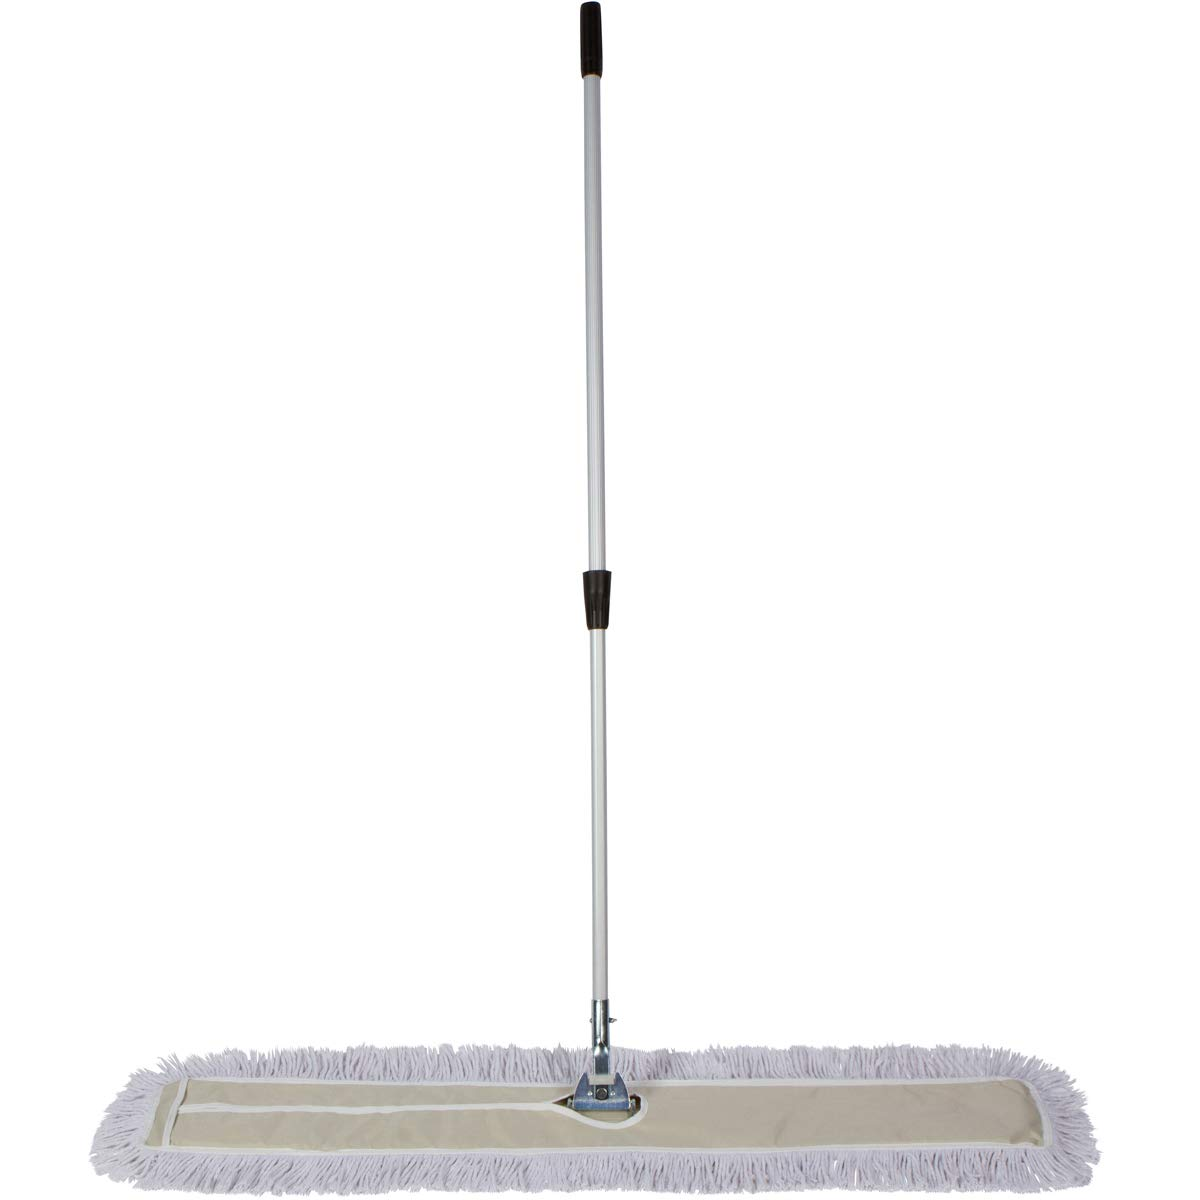 Tidy Tools 48 Inch Industrial Strength Cotton Dust Mop with Extendable Metal Telescopic Handle and Frame. 48'' X 5'' Wide Mop Head with Cut Ends by Tidy Tools (Image #3)